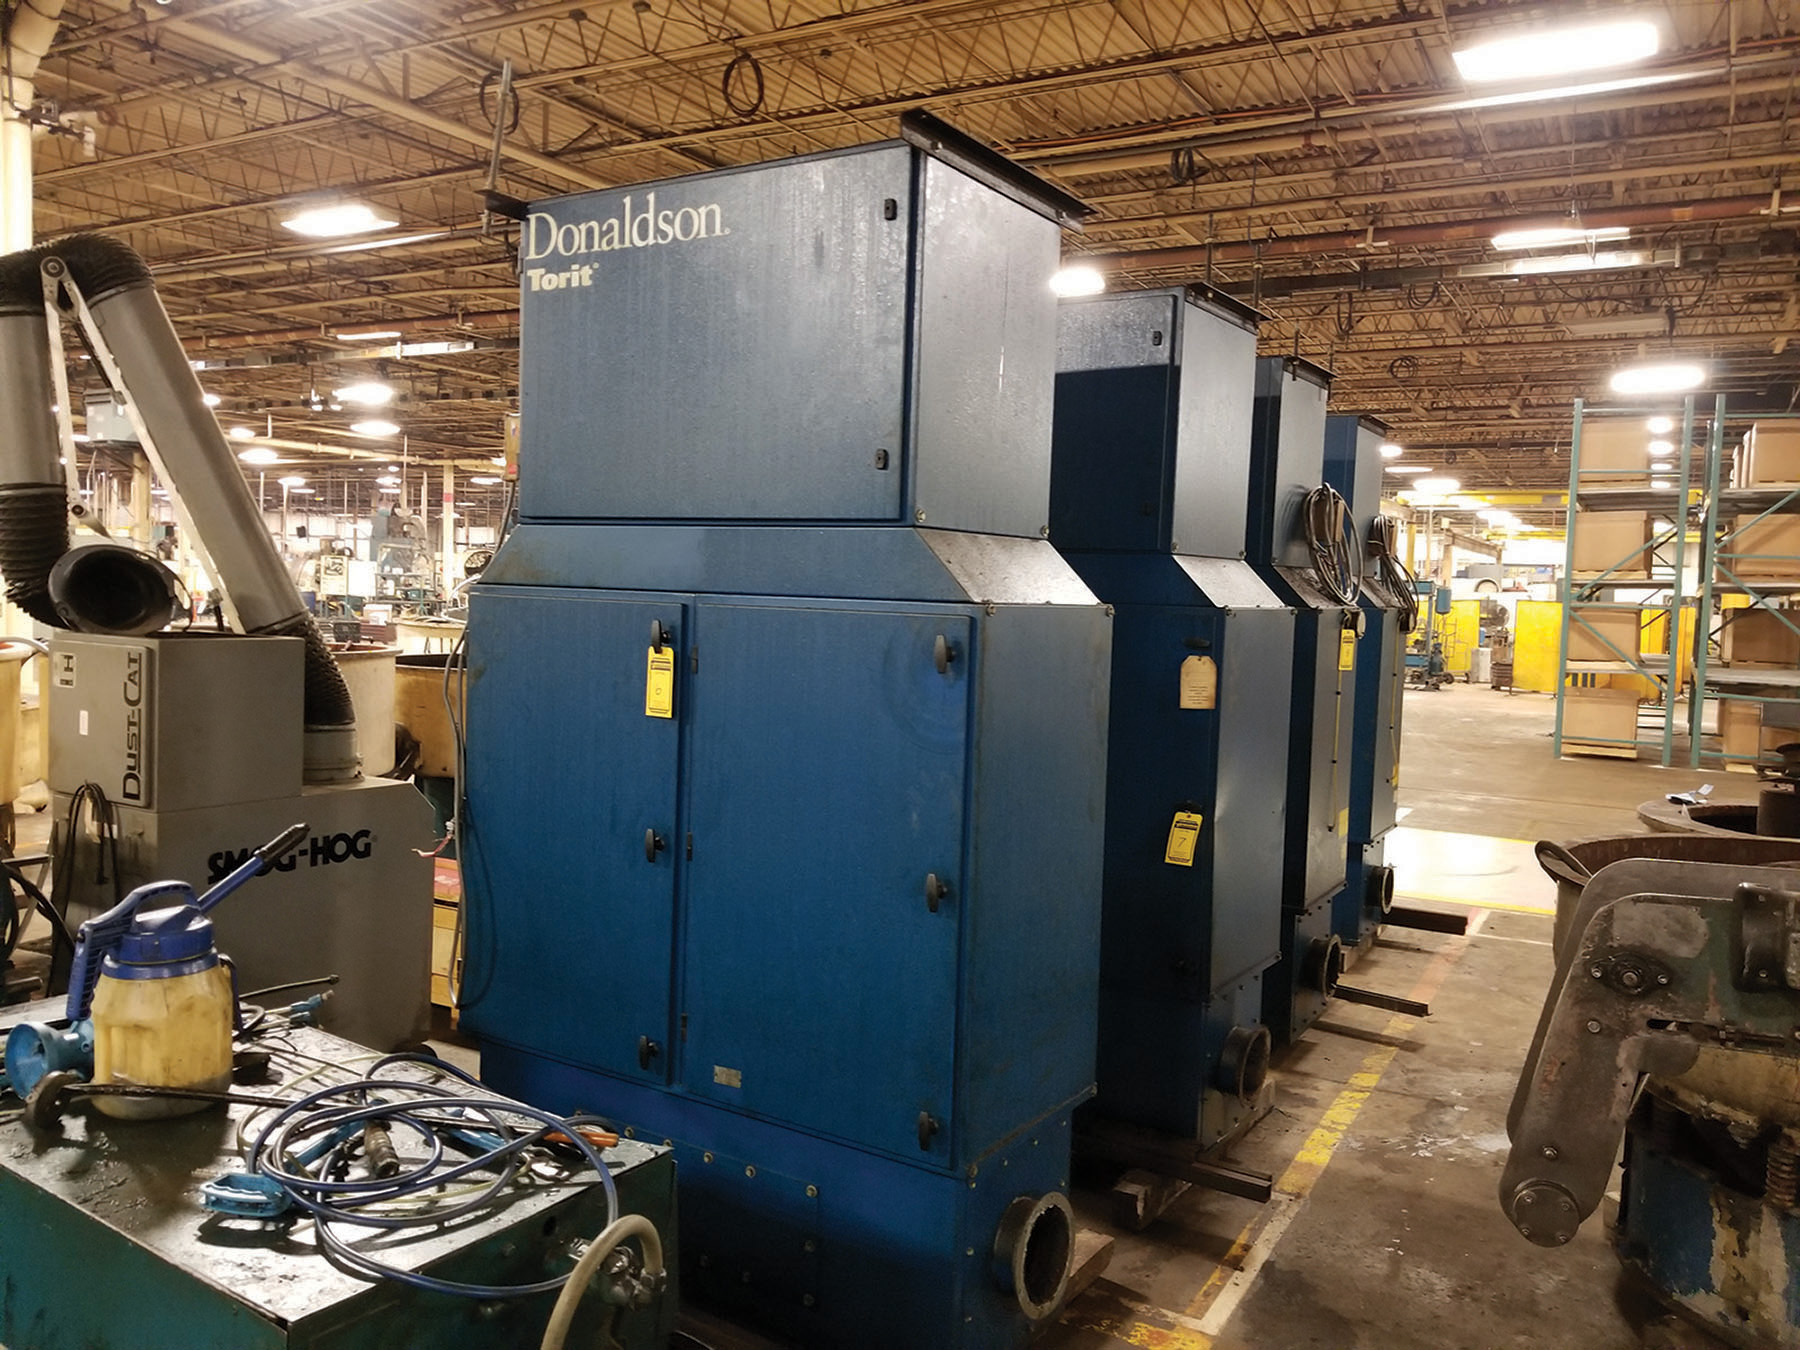 Lot 6 - DONALDSON TORIT MIST COLLECTOR - MODEL MDV- 6000, S/N IG736650, 3 1-HP, 60-CYCLE, 3,450-RPM ***$